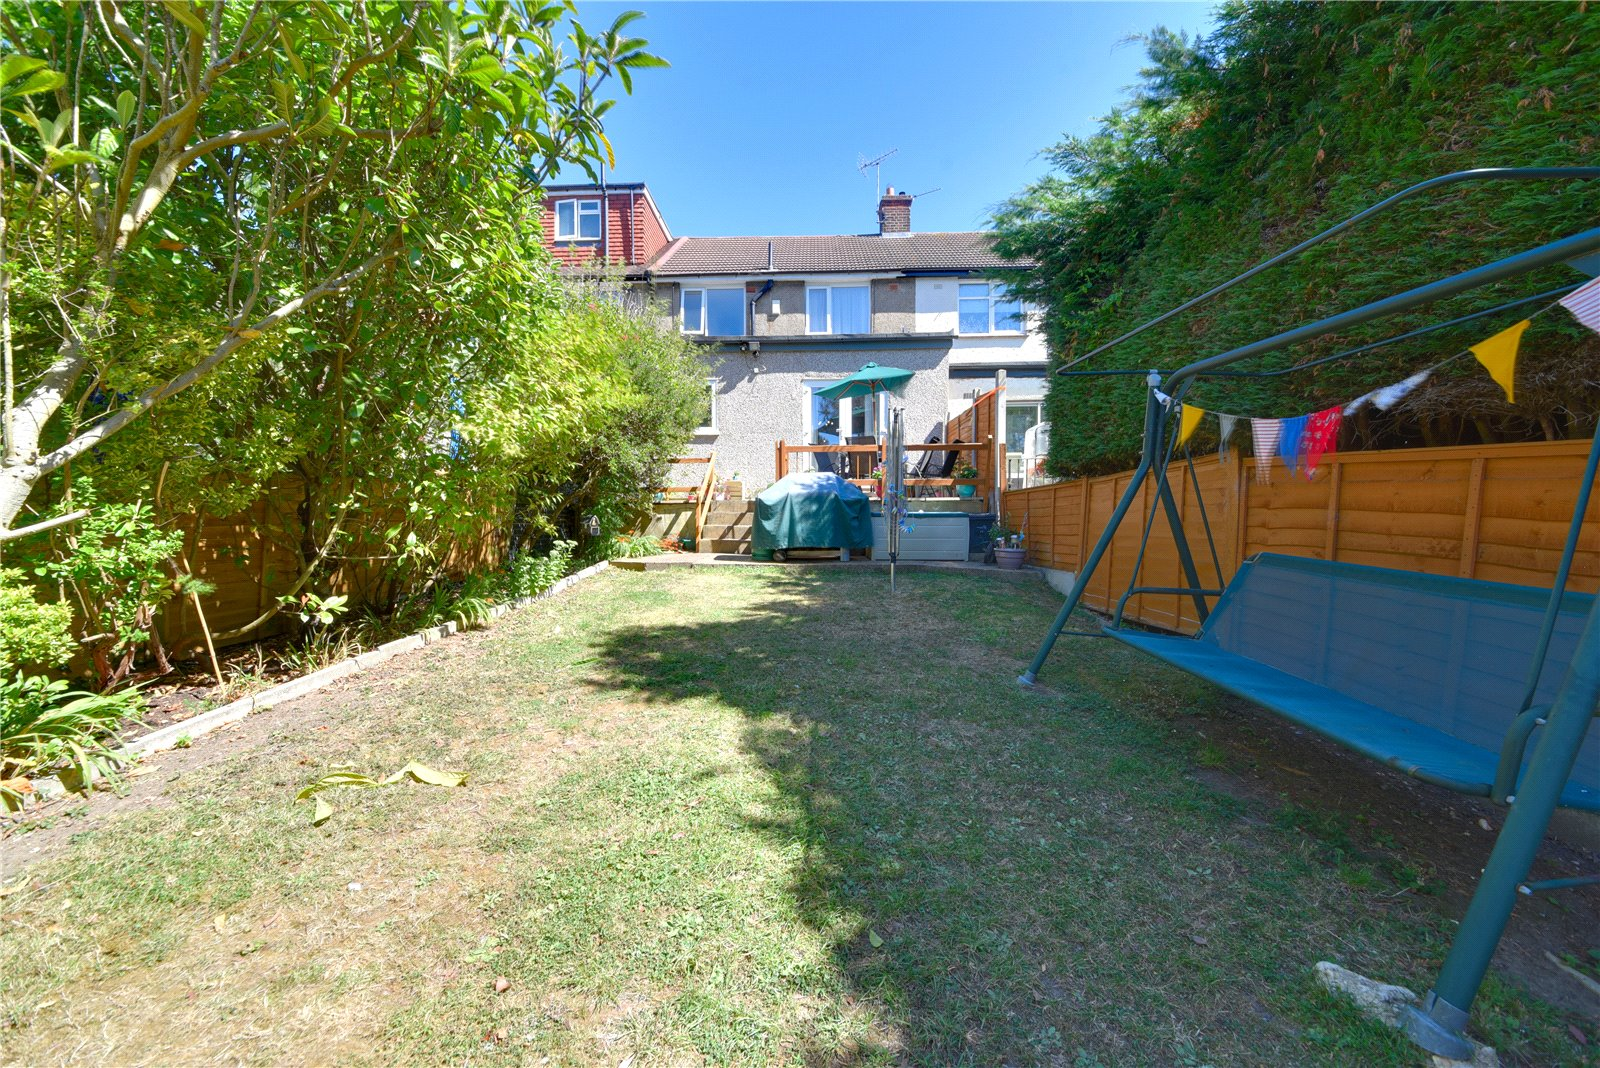 3 bed house for sale in Southgate, N14 4NY 8